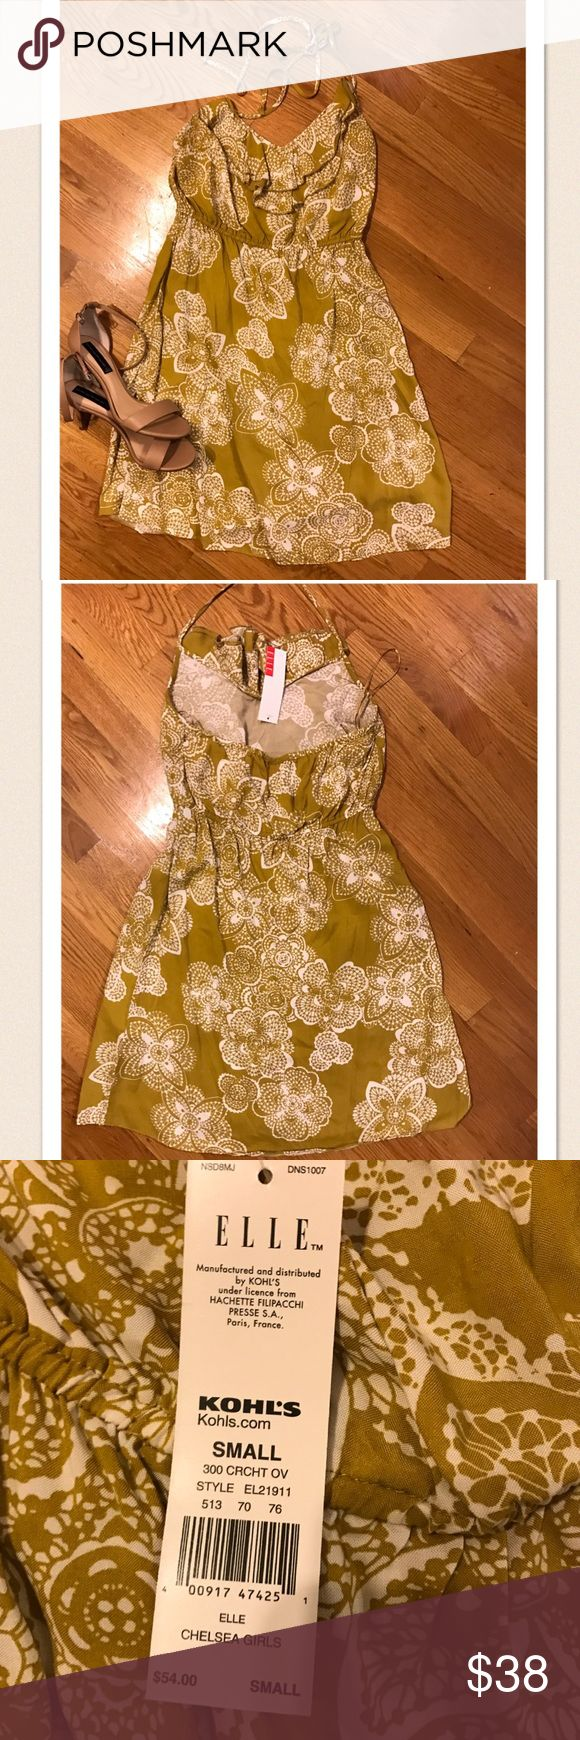 NWT yellow and white halter sundress NWT!!! Super cute yellow and white flowered halter sundress ELLE  Dresses